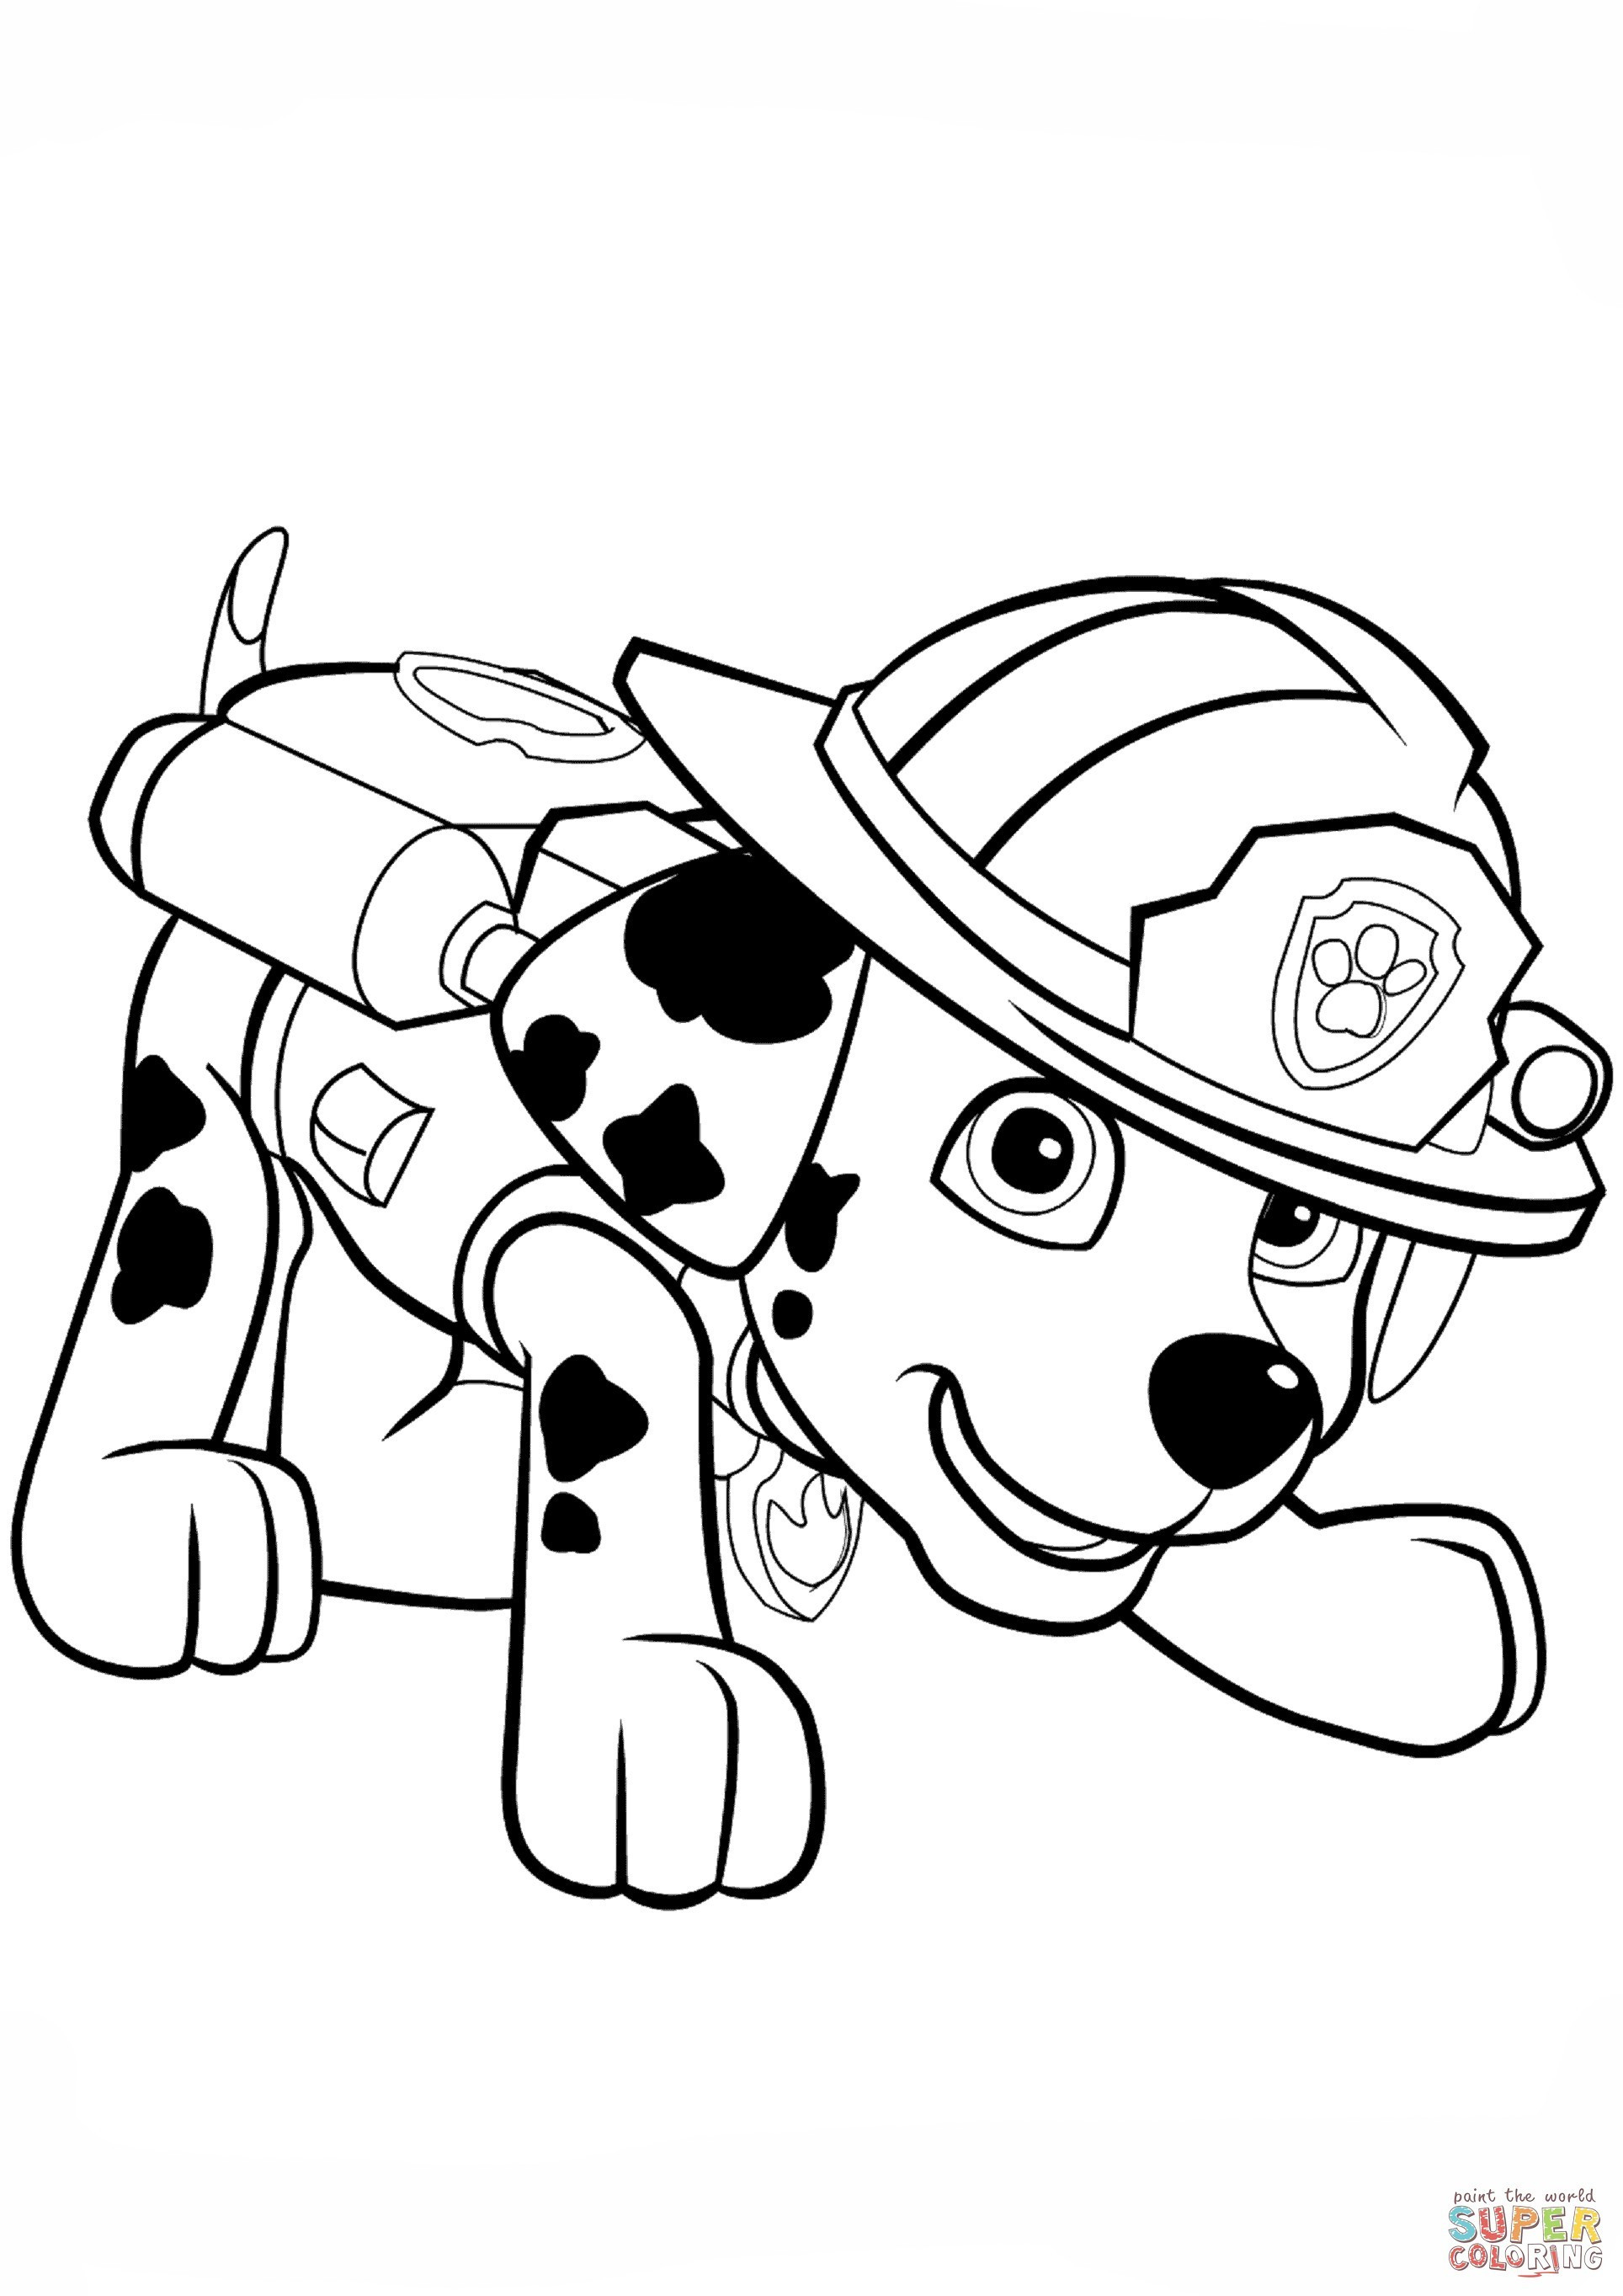 Paw Patrol Coloring Pages Paw Patrol Vehicles Coloring Pages Best Of Best Paw Patrol Coloring